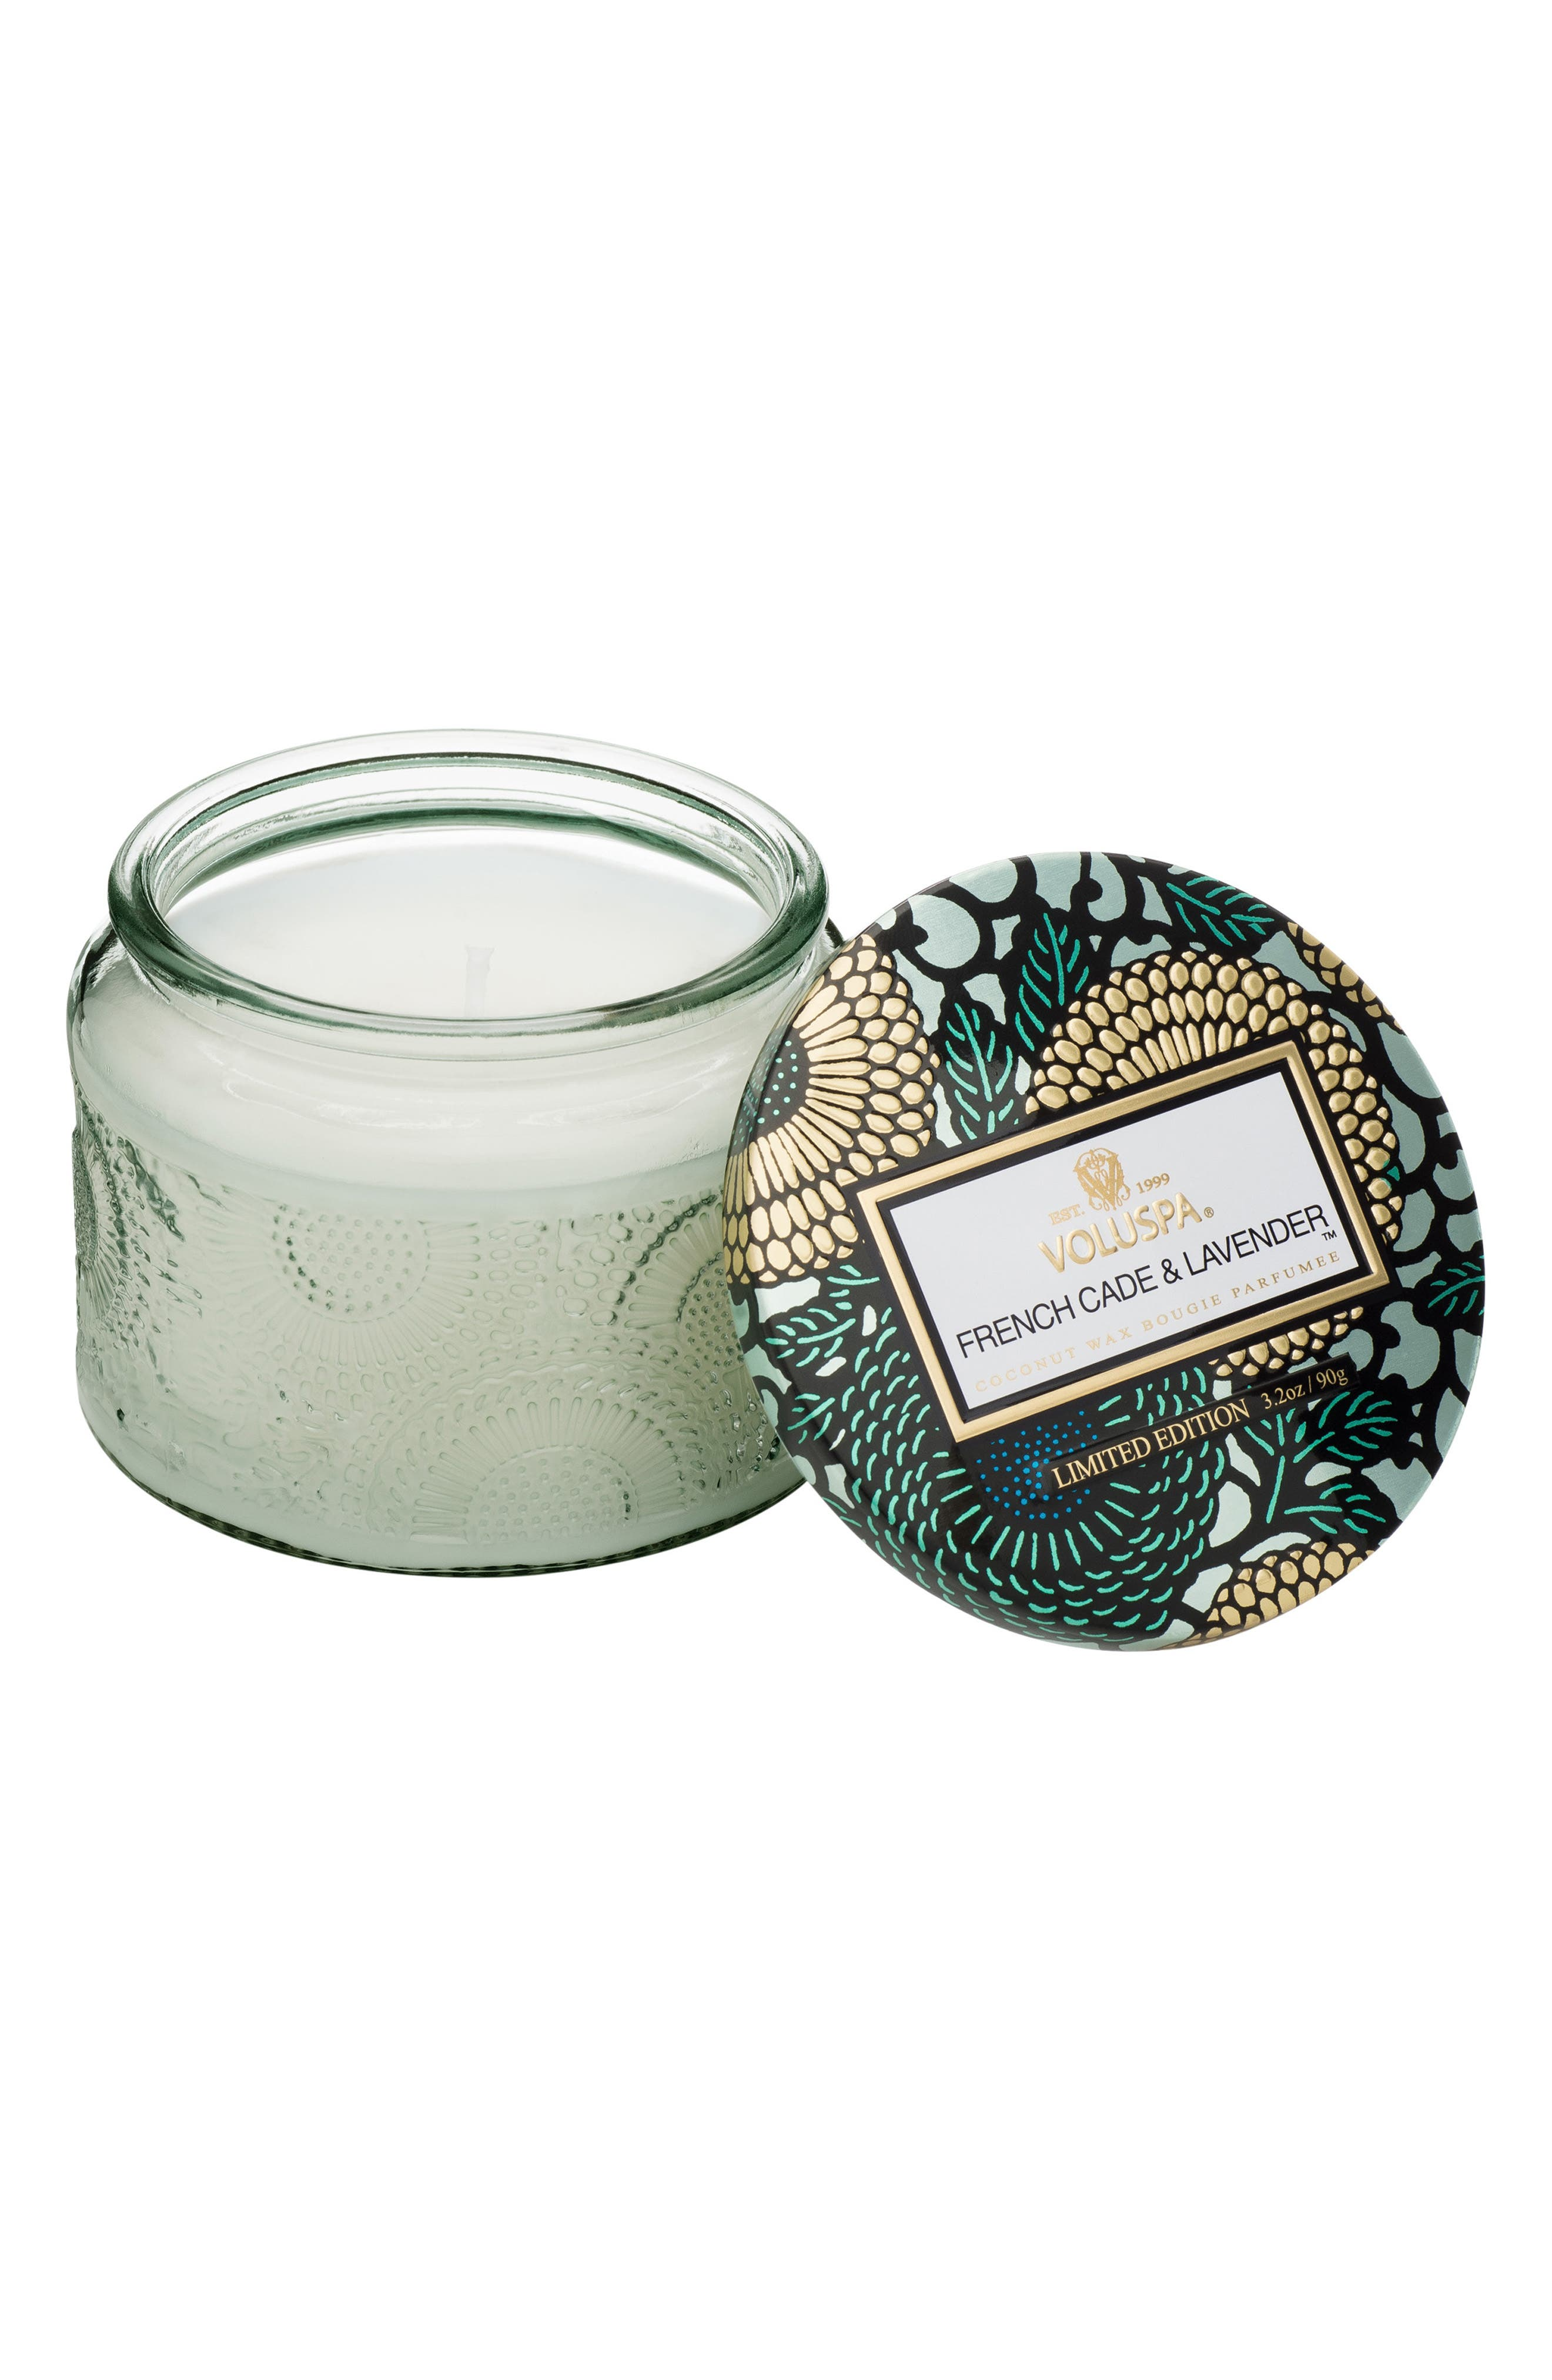 Japonica French Cade Lavender Petite Embossed Glass Jar Candle,                             Alternate thumbnail 2, color,                             NO COLOR